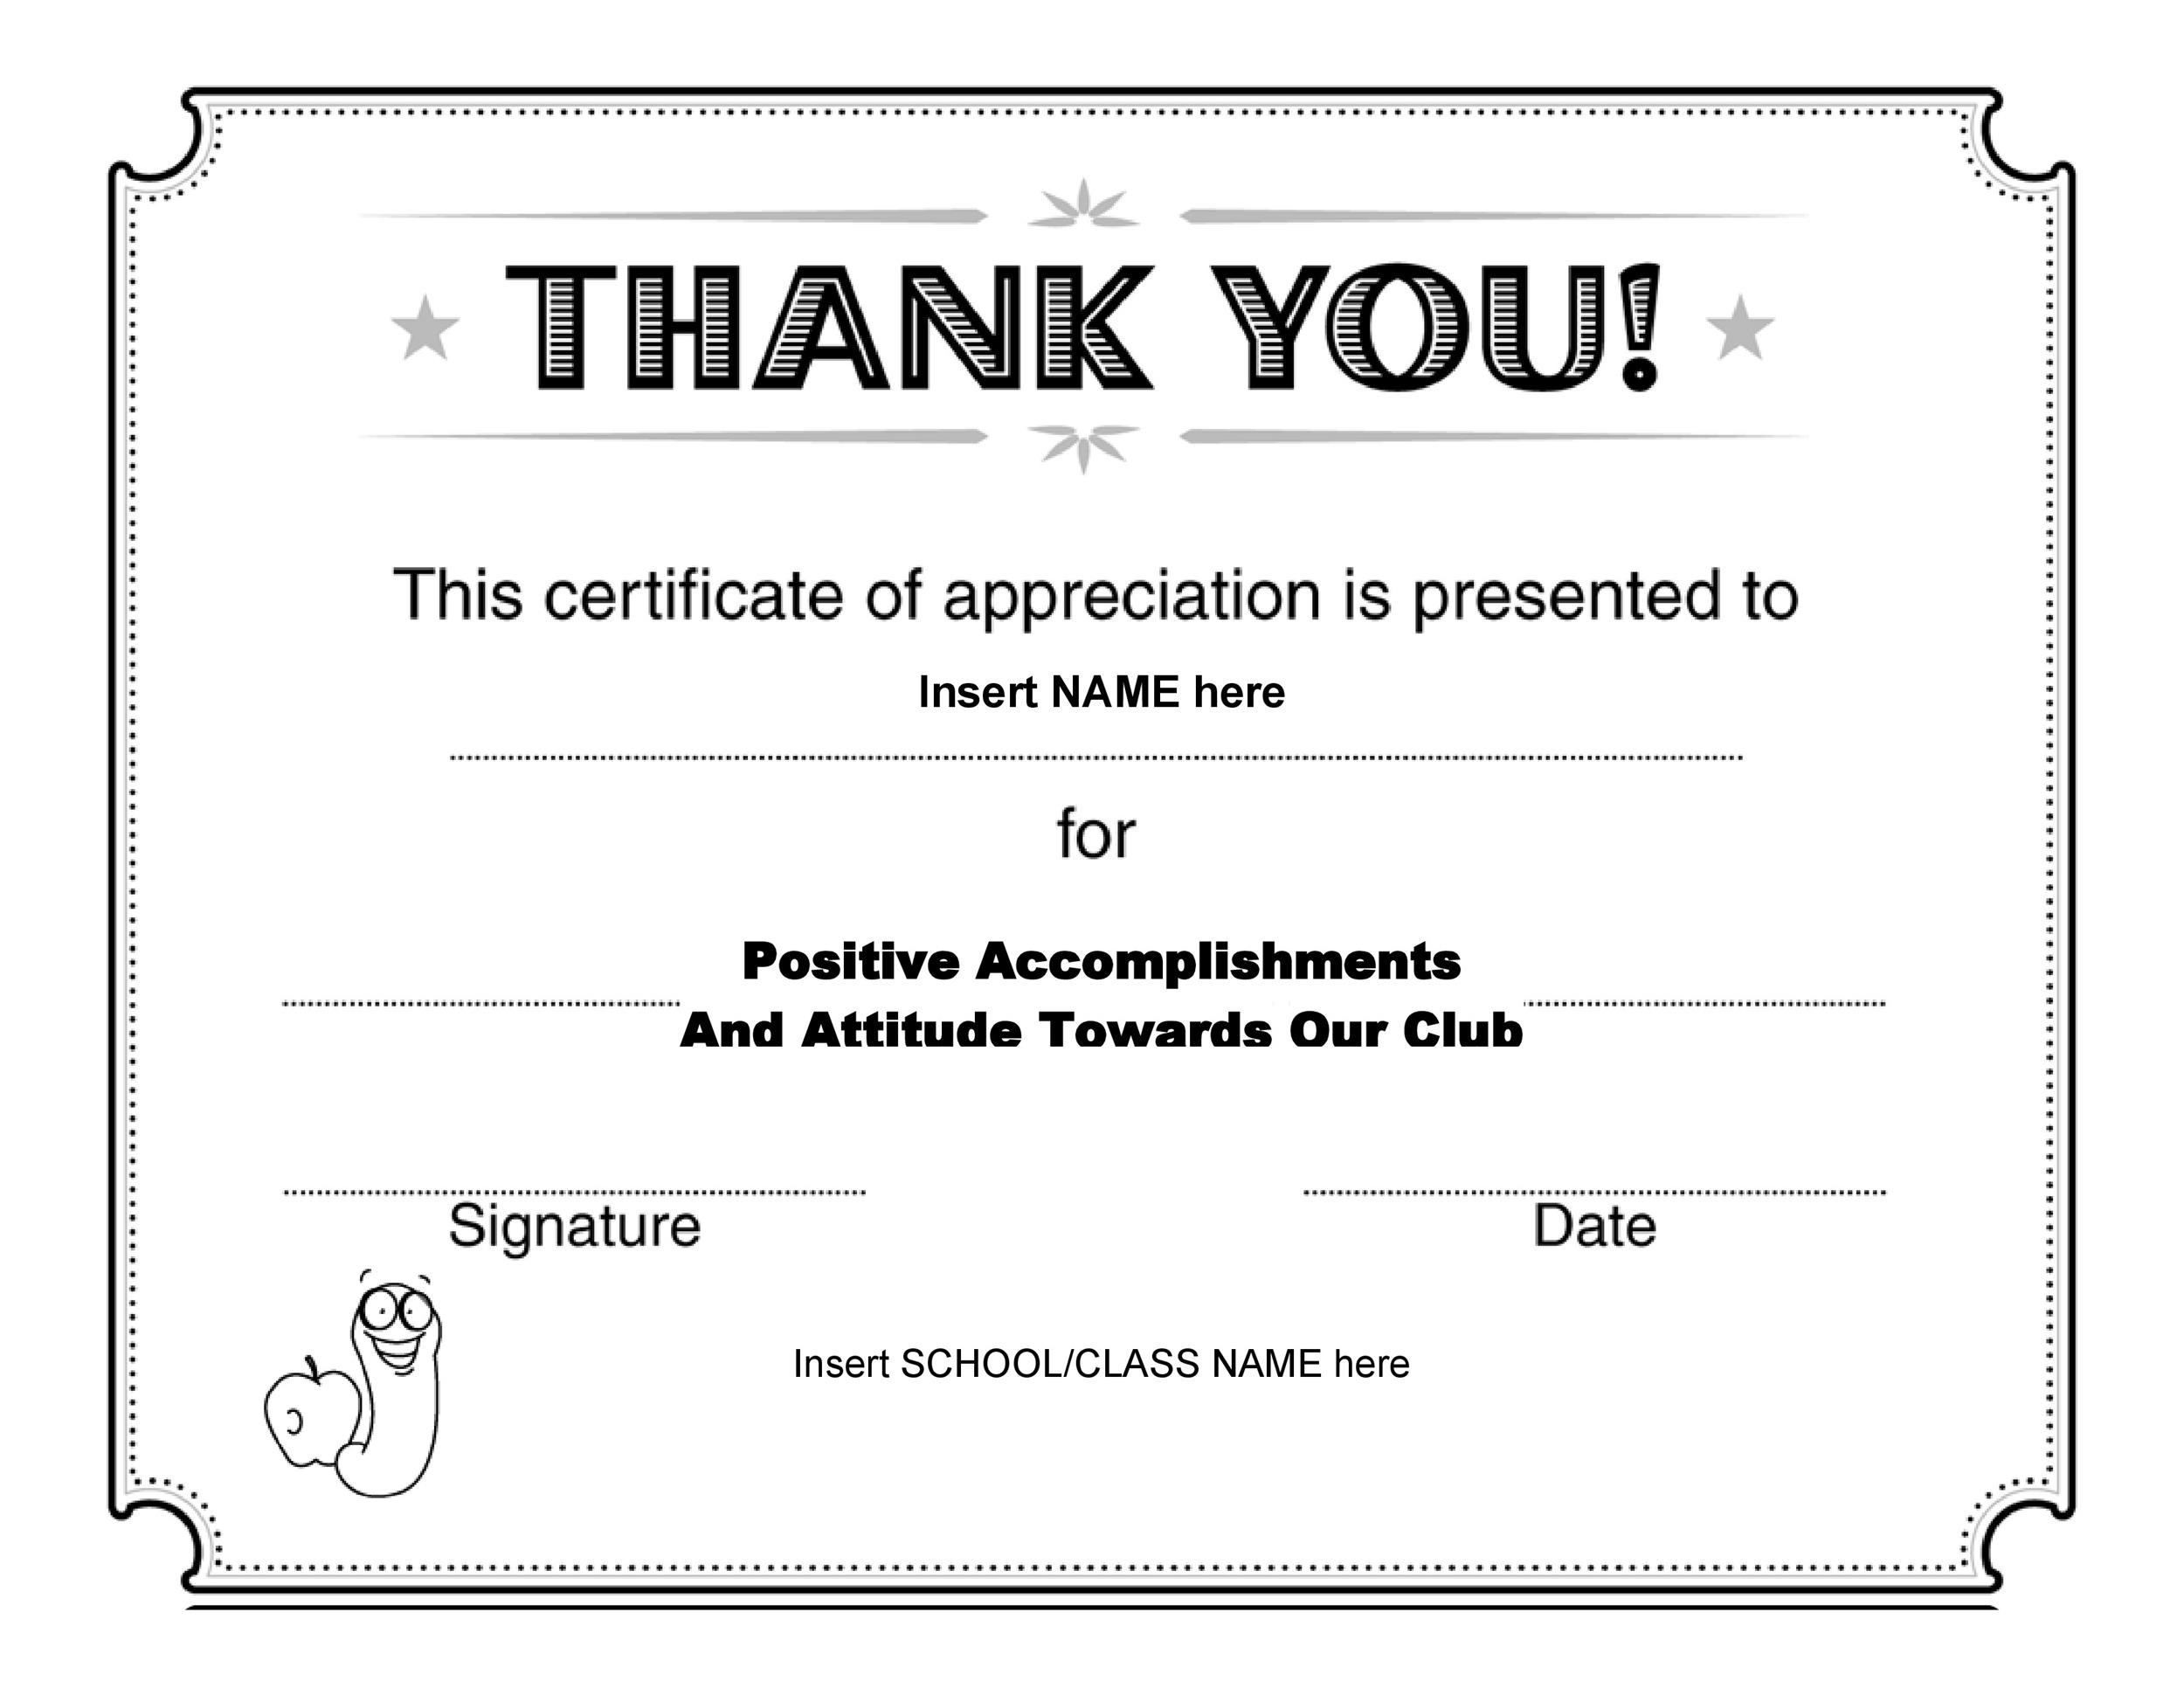 Donation certificate template word fieldstation certificate of appreciation template yelopaper Image collections